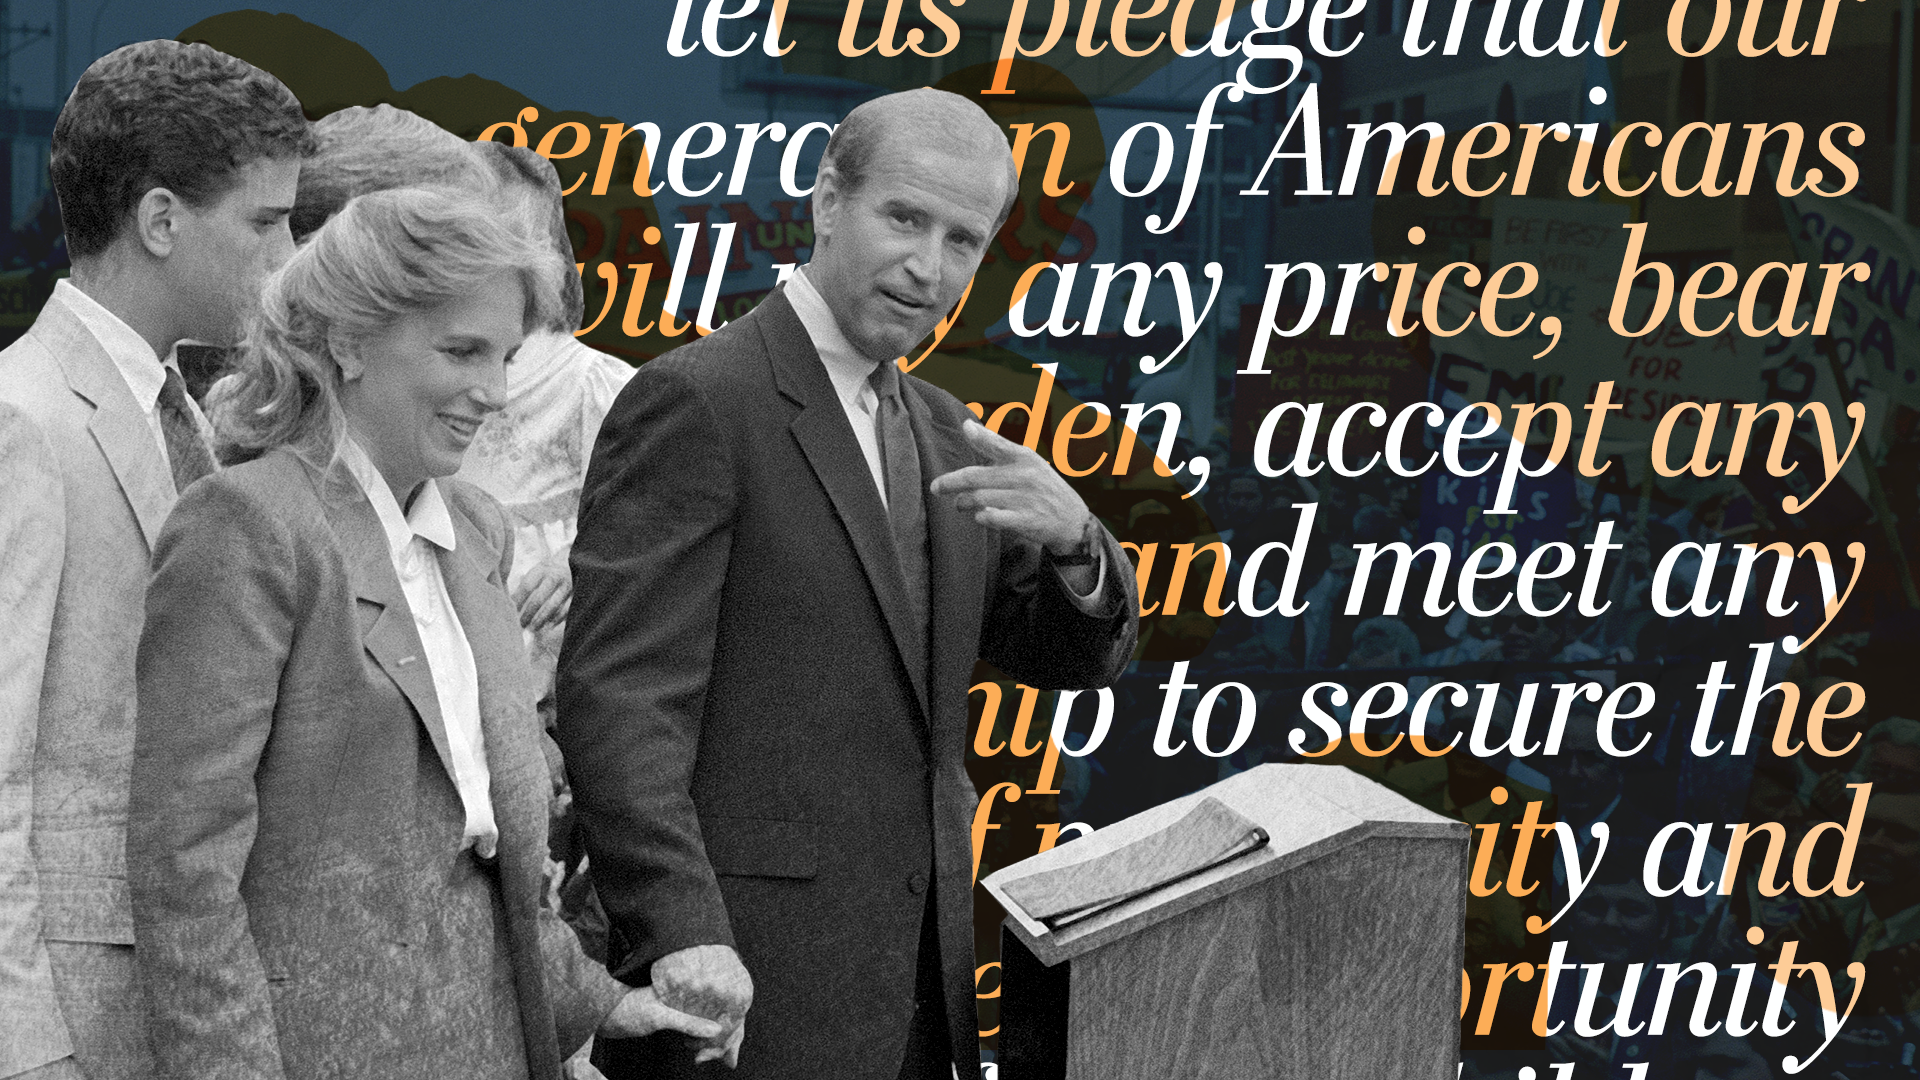 Echoes of Biden's 1987 plagiarism scandal continue to reverberate